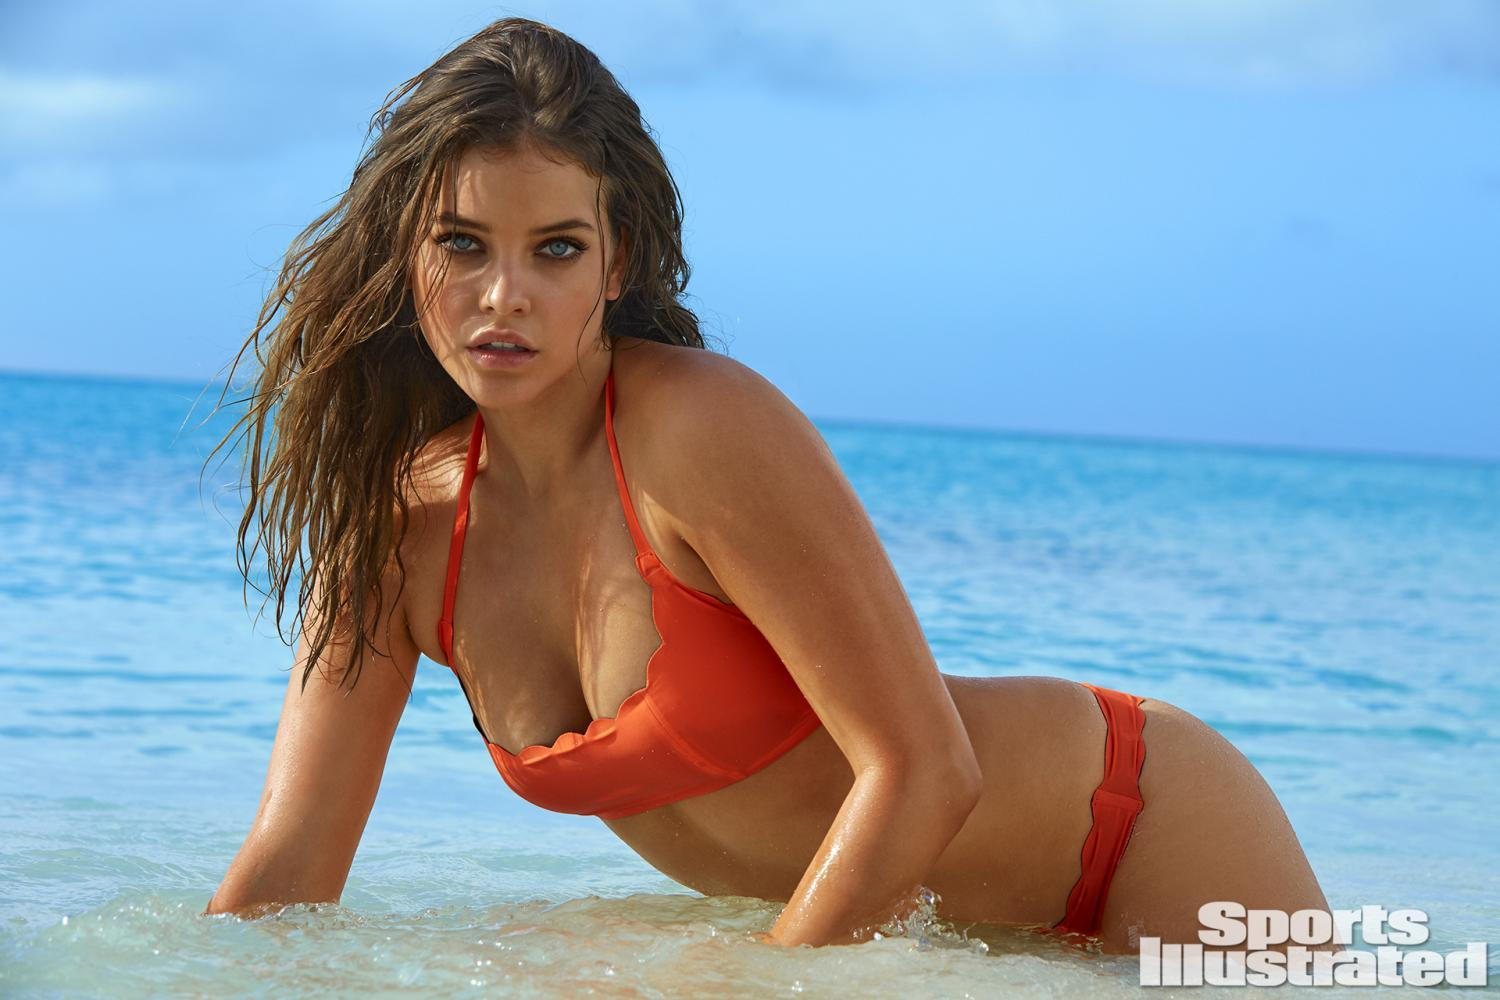 barbara-palvin-2016-photo-sports-illustrated-x160011_tk5_0450-rawwmfinal1920.jpg